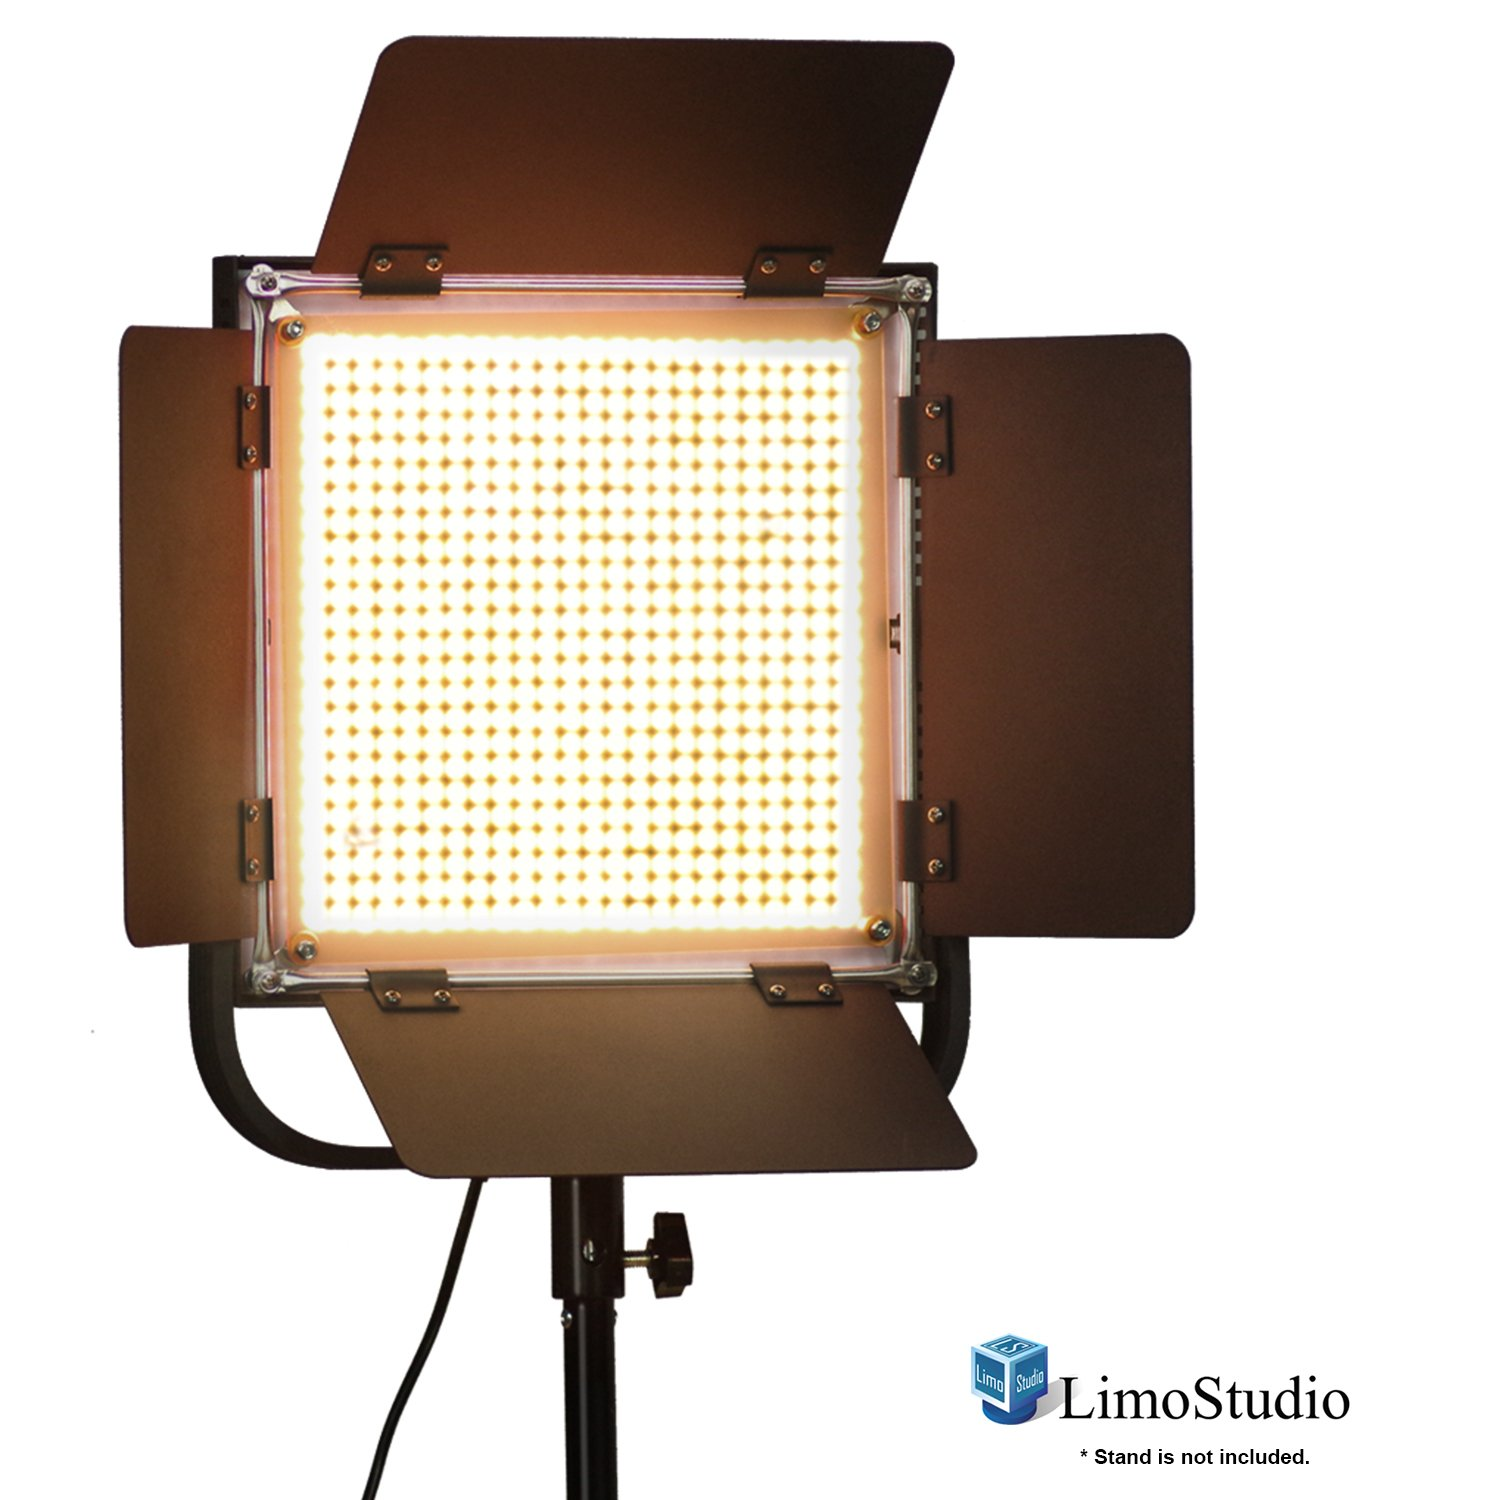 LimoStudio LED 600 Photographic Lighting Panel with Digital Display Screen, Photo Studio Barndoor Light, Continuous Video Light, Brightness Control Available with Cleaning Cloth, AGG2383